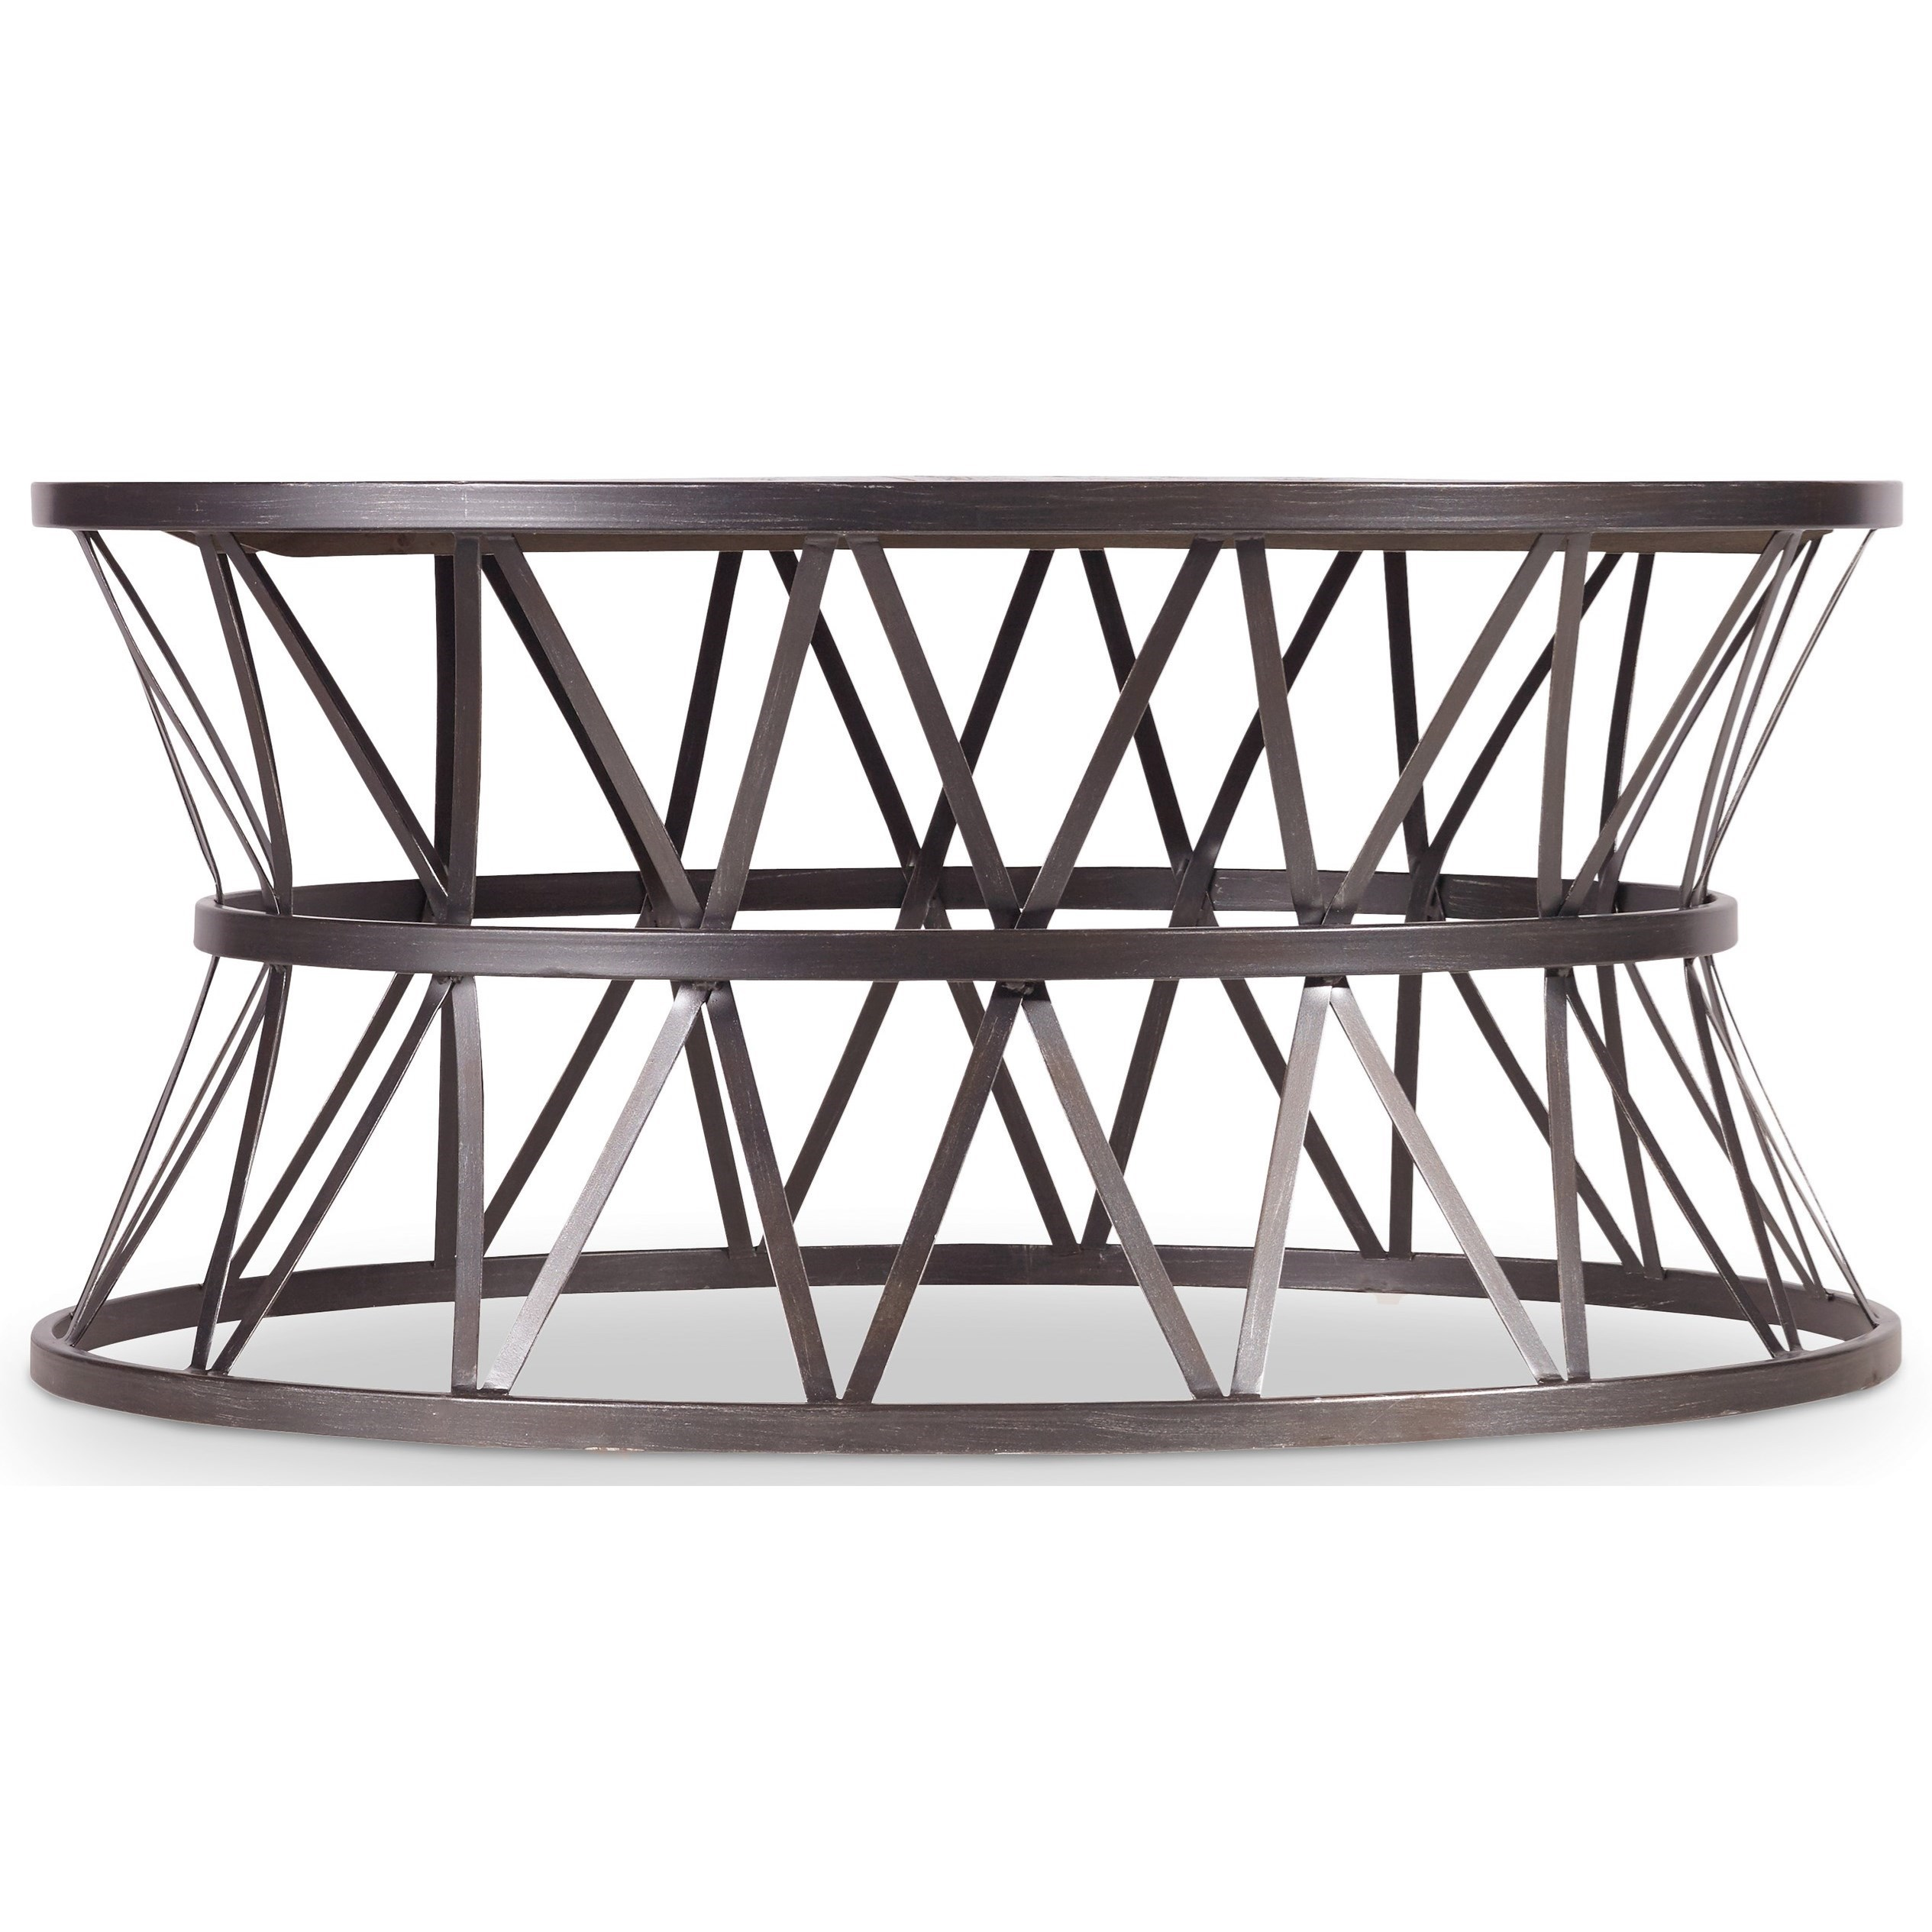 Hooker Furniture Chadwick Round Cocktail Table - Item Number: 5434-80111